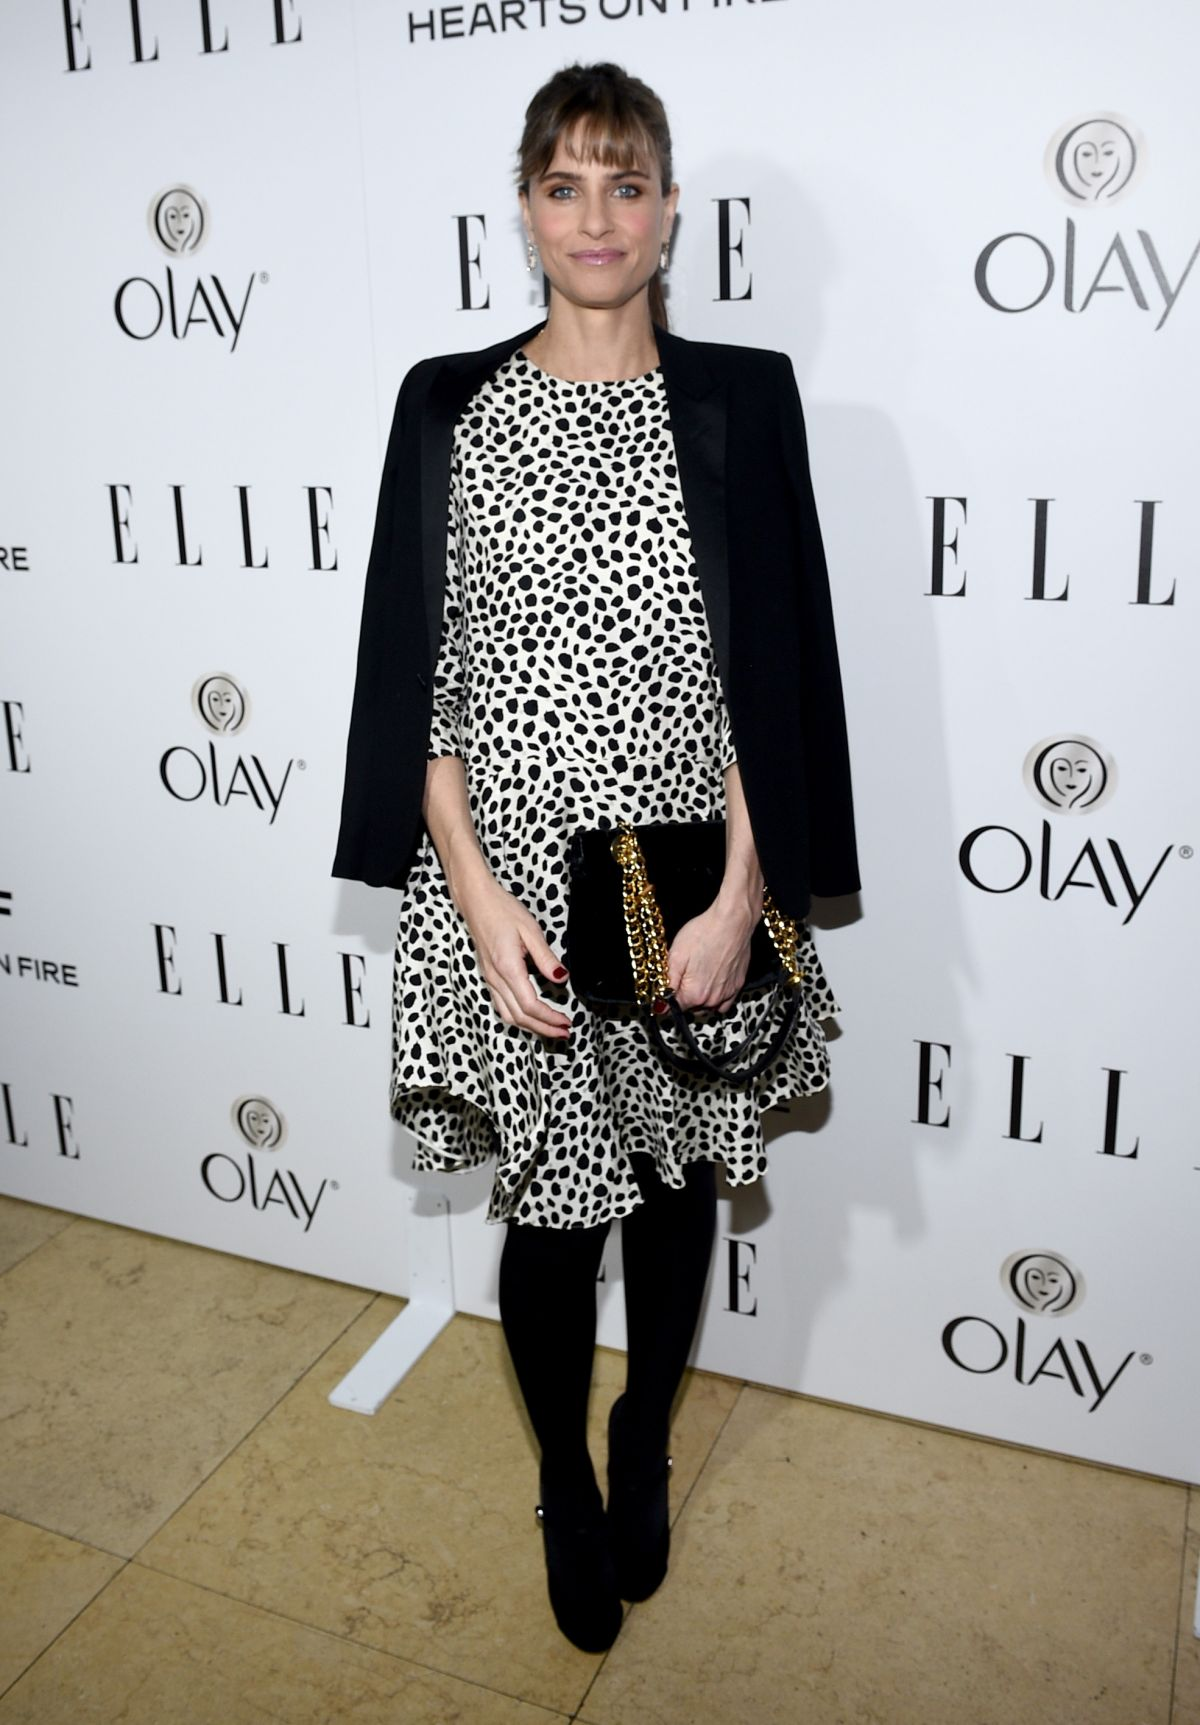 AMANDA PEET at 2015 Elle Women in Television Celebration in West Hollywood